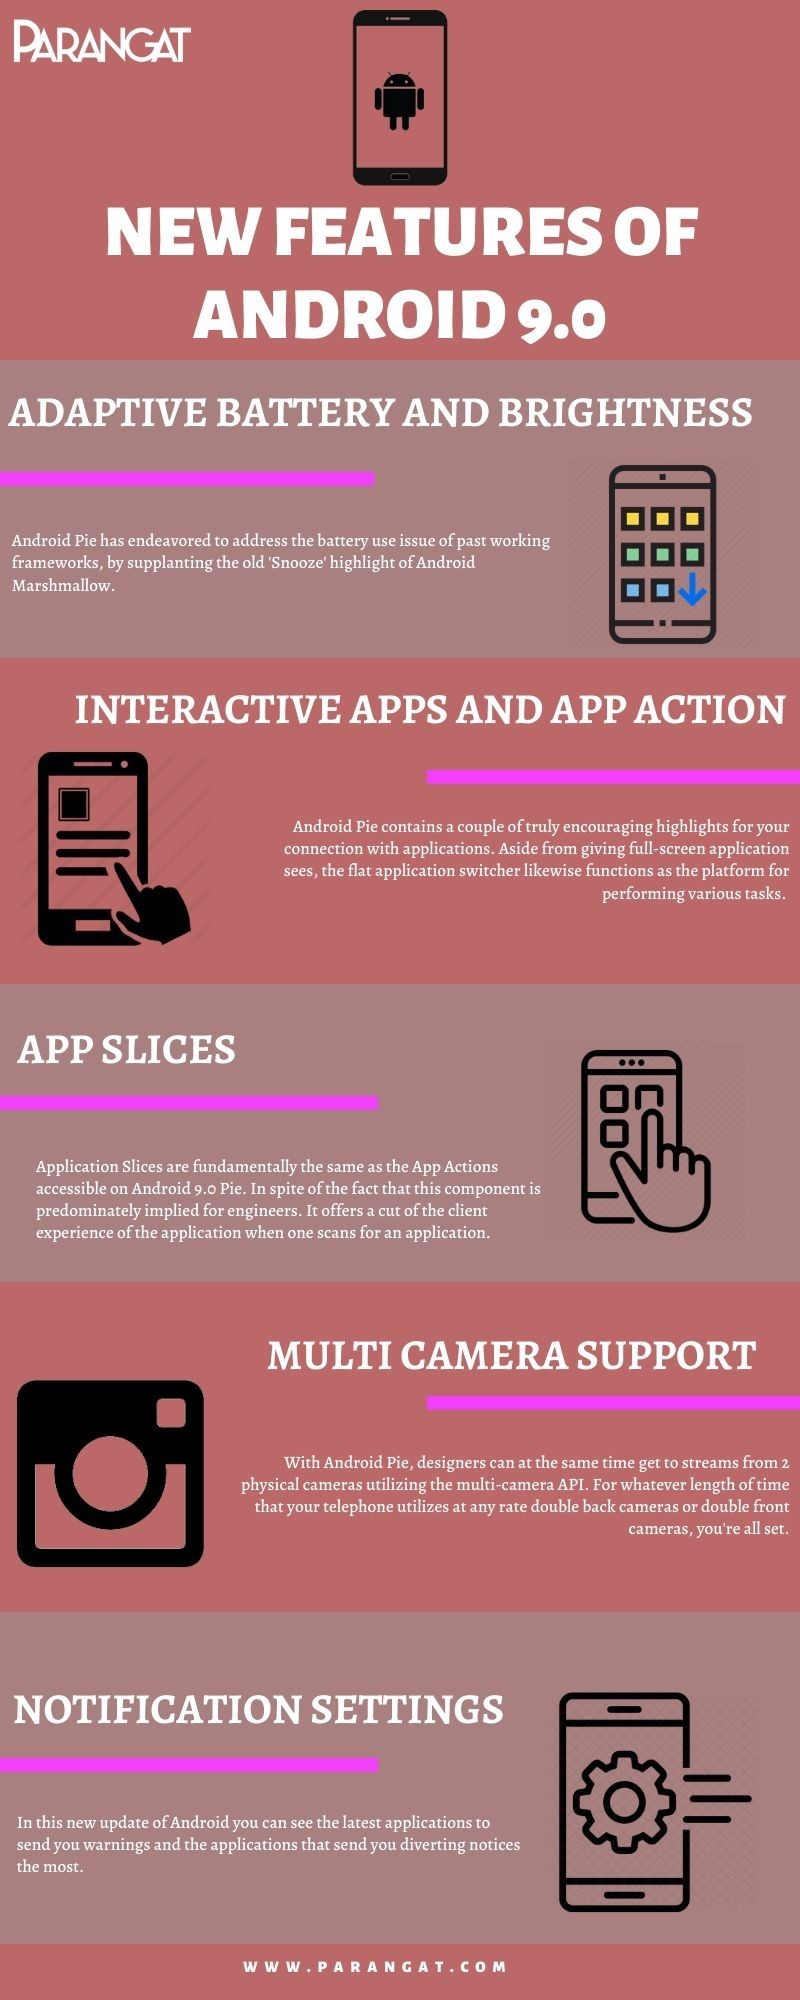 New Features of Android 9.0